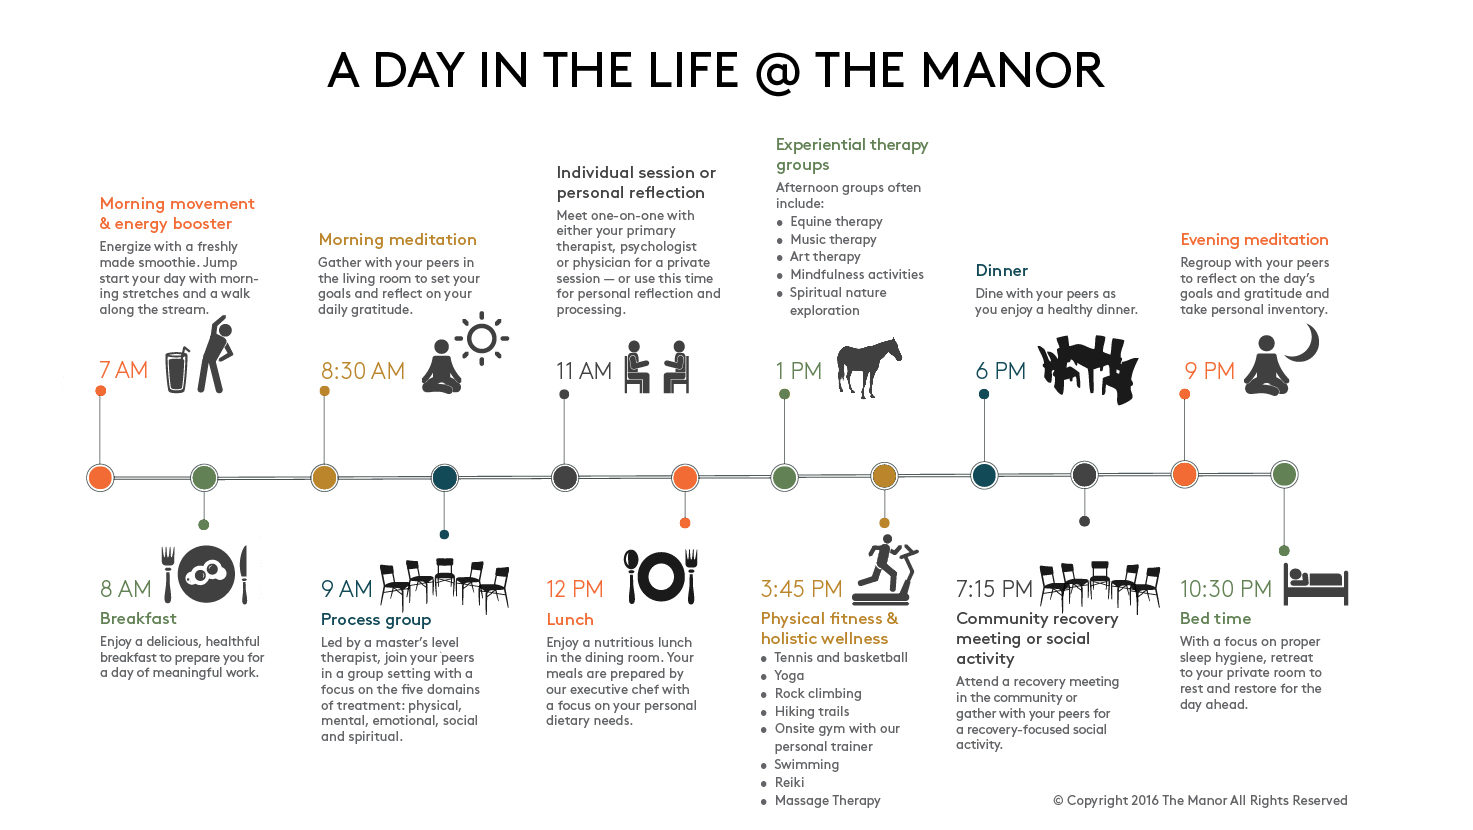 The-Manor-INSERT-TIMELINE-Website-Image-Only.-2